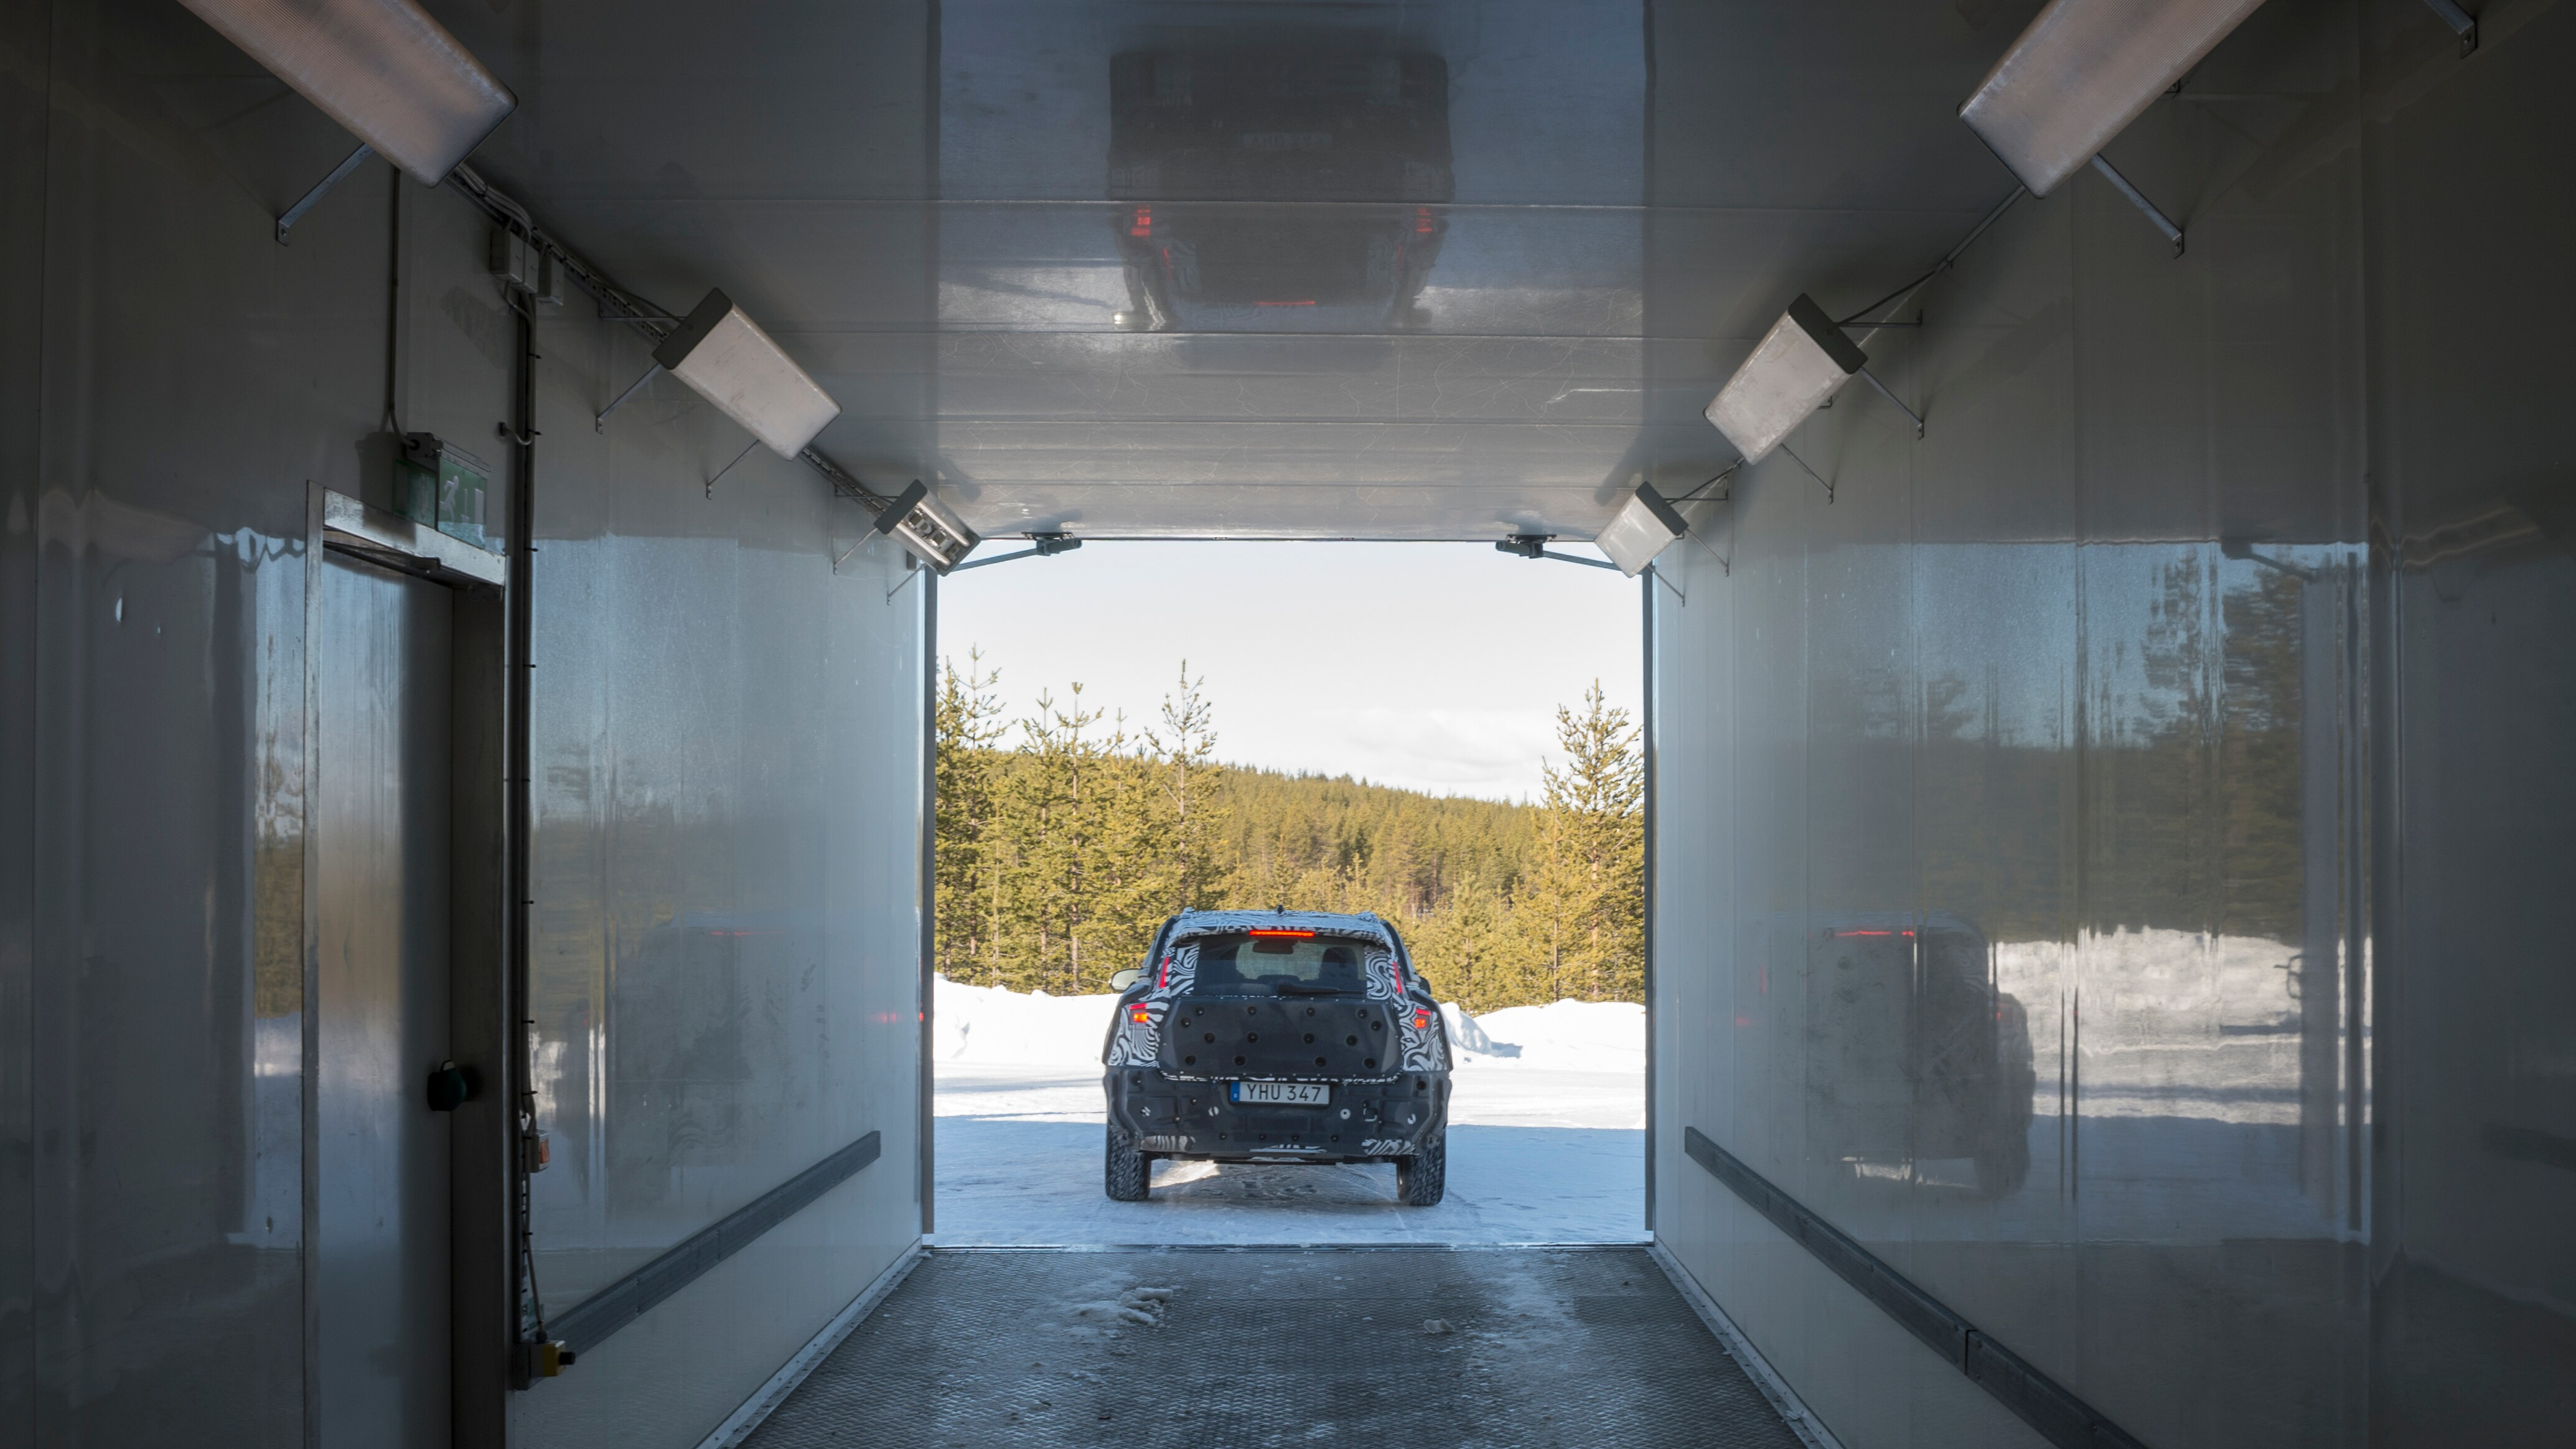 A Volvo XC60 emerges from a -31 degrees Celcius freezer box